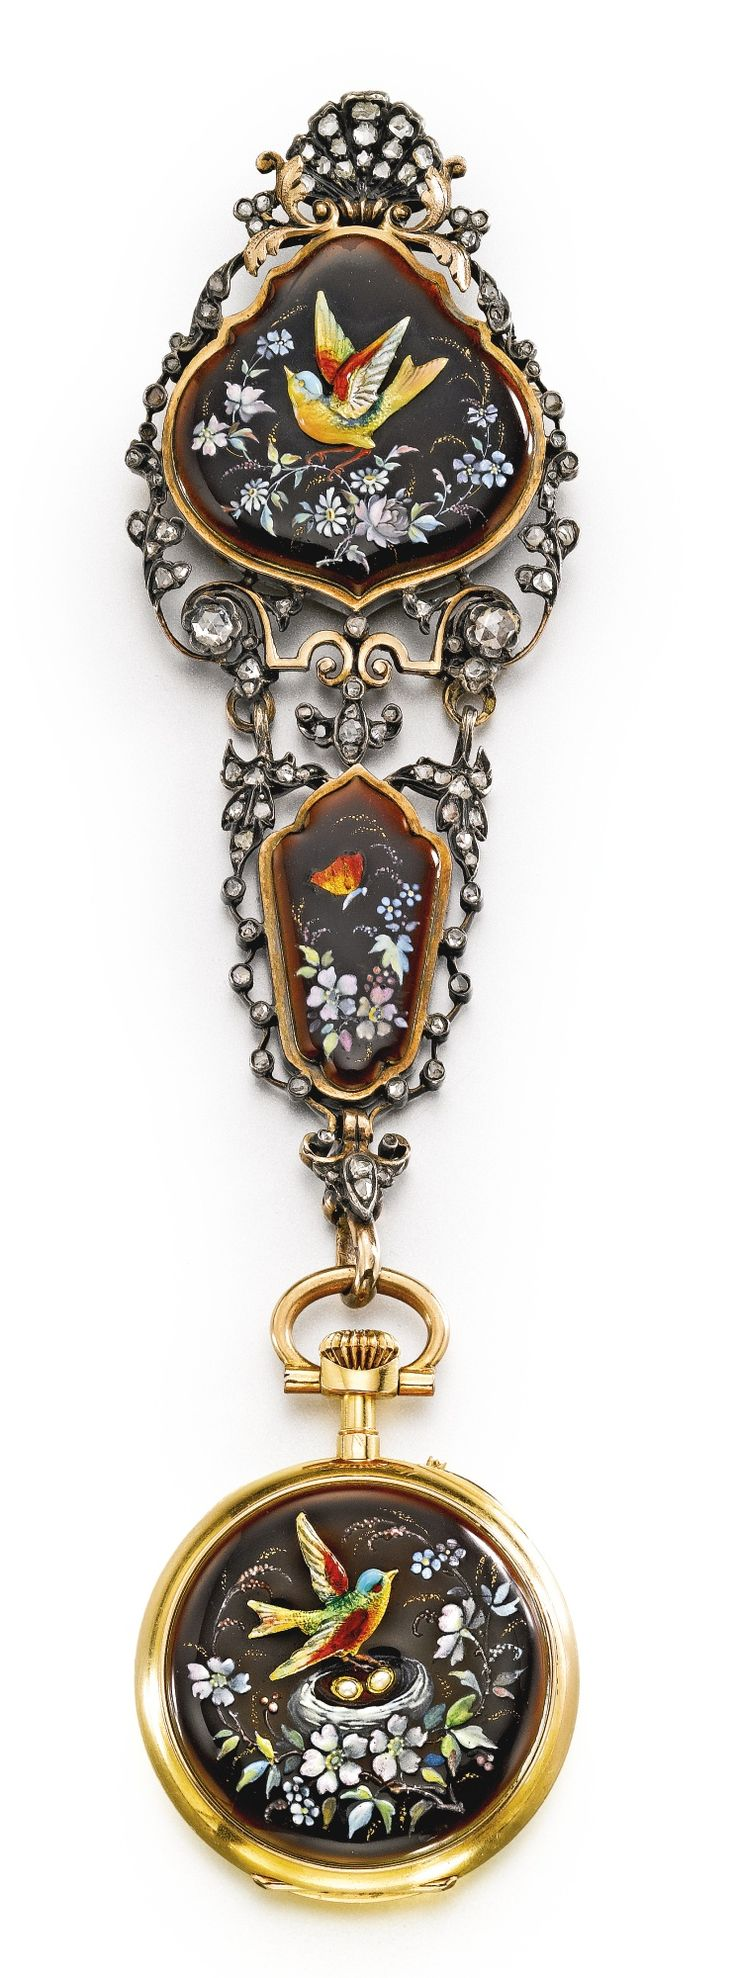 CHARLES OUDIN AN 18K YELLOW GOLD AND ENAMEL OPEN-FACED WATCH WITH CHATELAINE CIRCA 1890 • jeweled gilt cylinder movement, signed gold cuvette • white enamel dial, Roman numerals, outer Arabic minute ring, fine gold hands • case back with brown enamel decorated with flowers and centered by a raised bird in colorful enamel seated on its nest • cuvette signed • with a matching châtelaine set with rose-cut diamonds diameter 31.5 mm